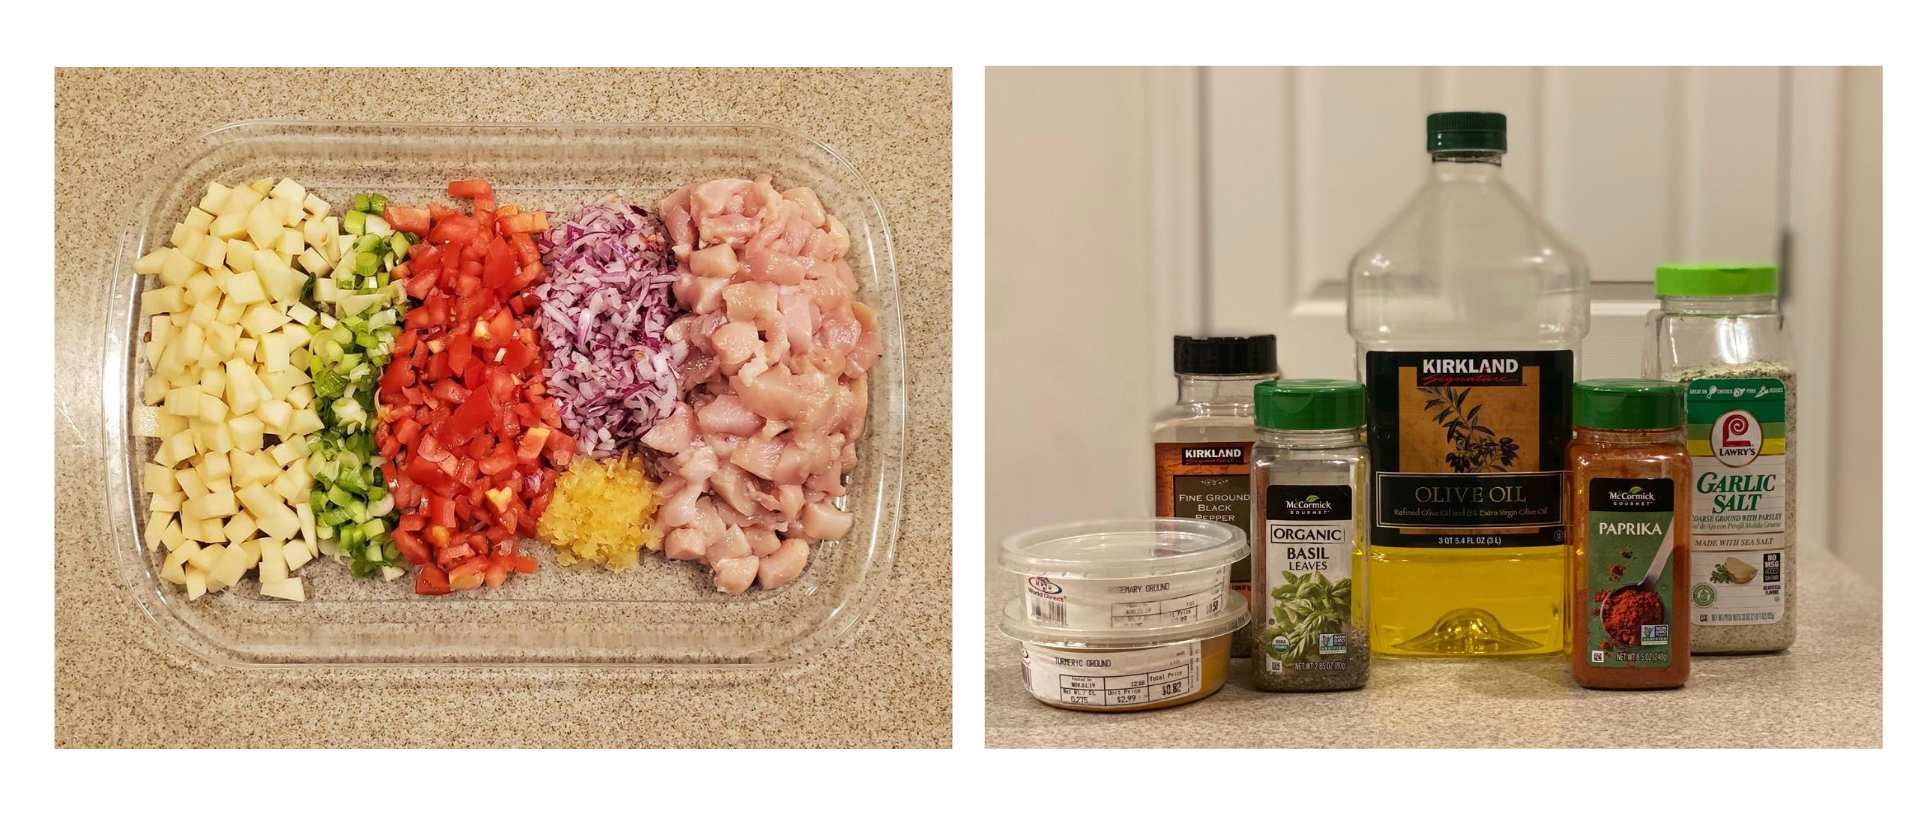 pictures of the ingredients